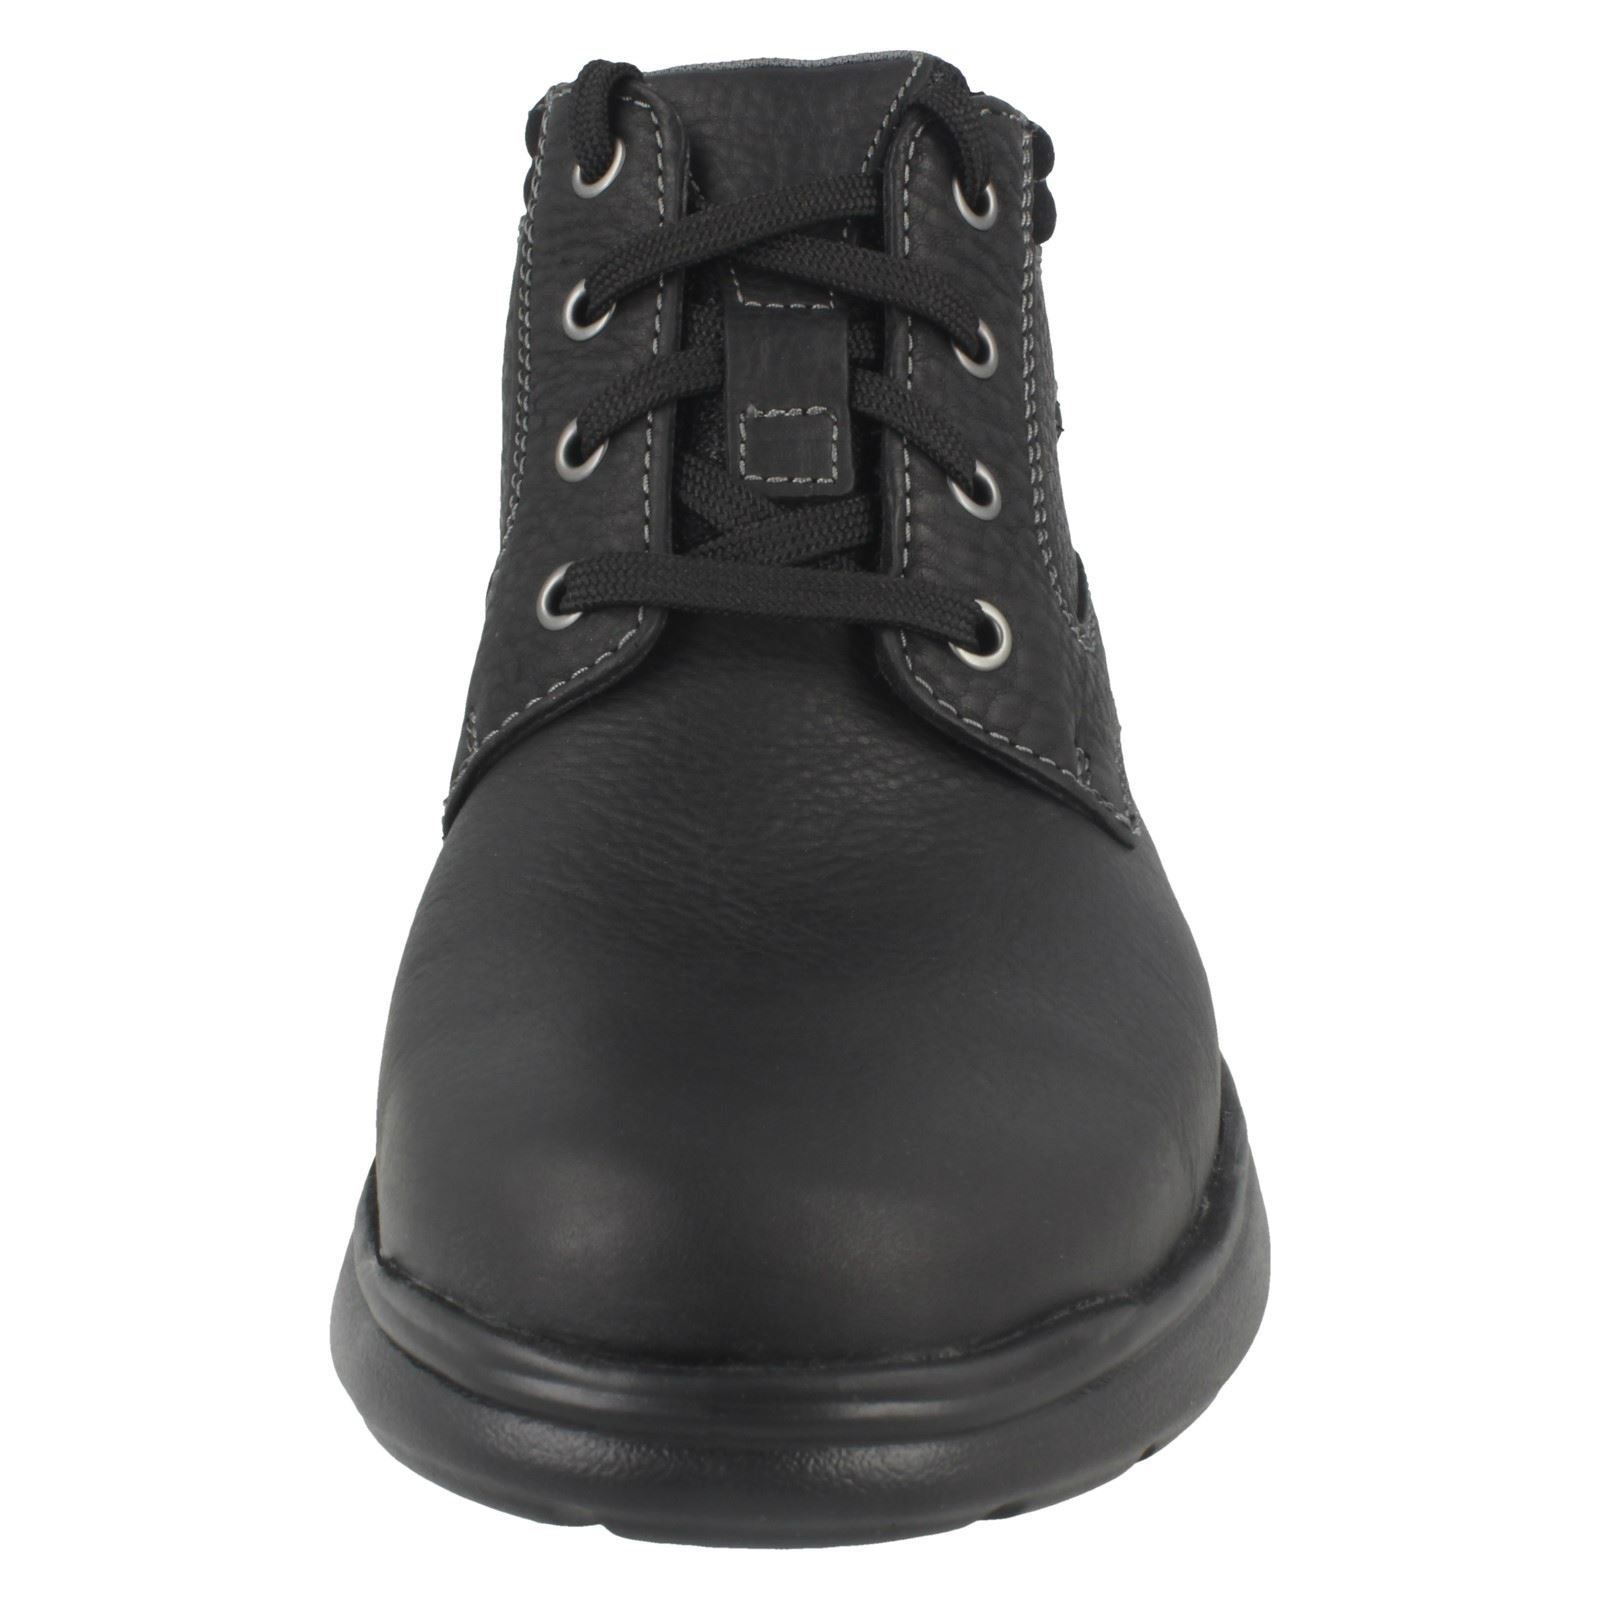 Mens Clarks Casual Ankle Boots Cotrell Rise